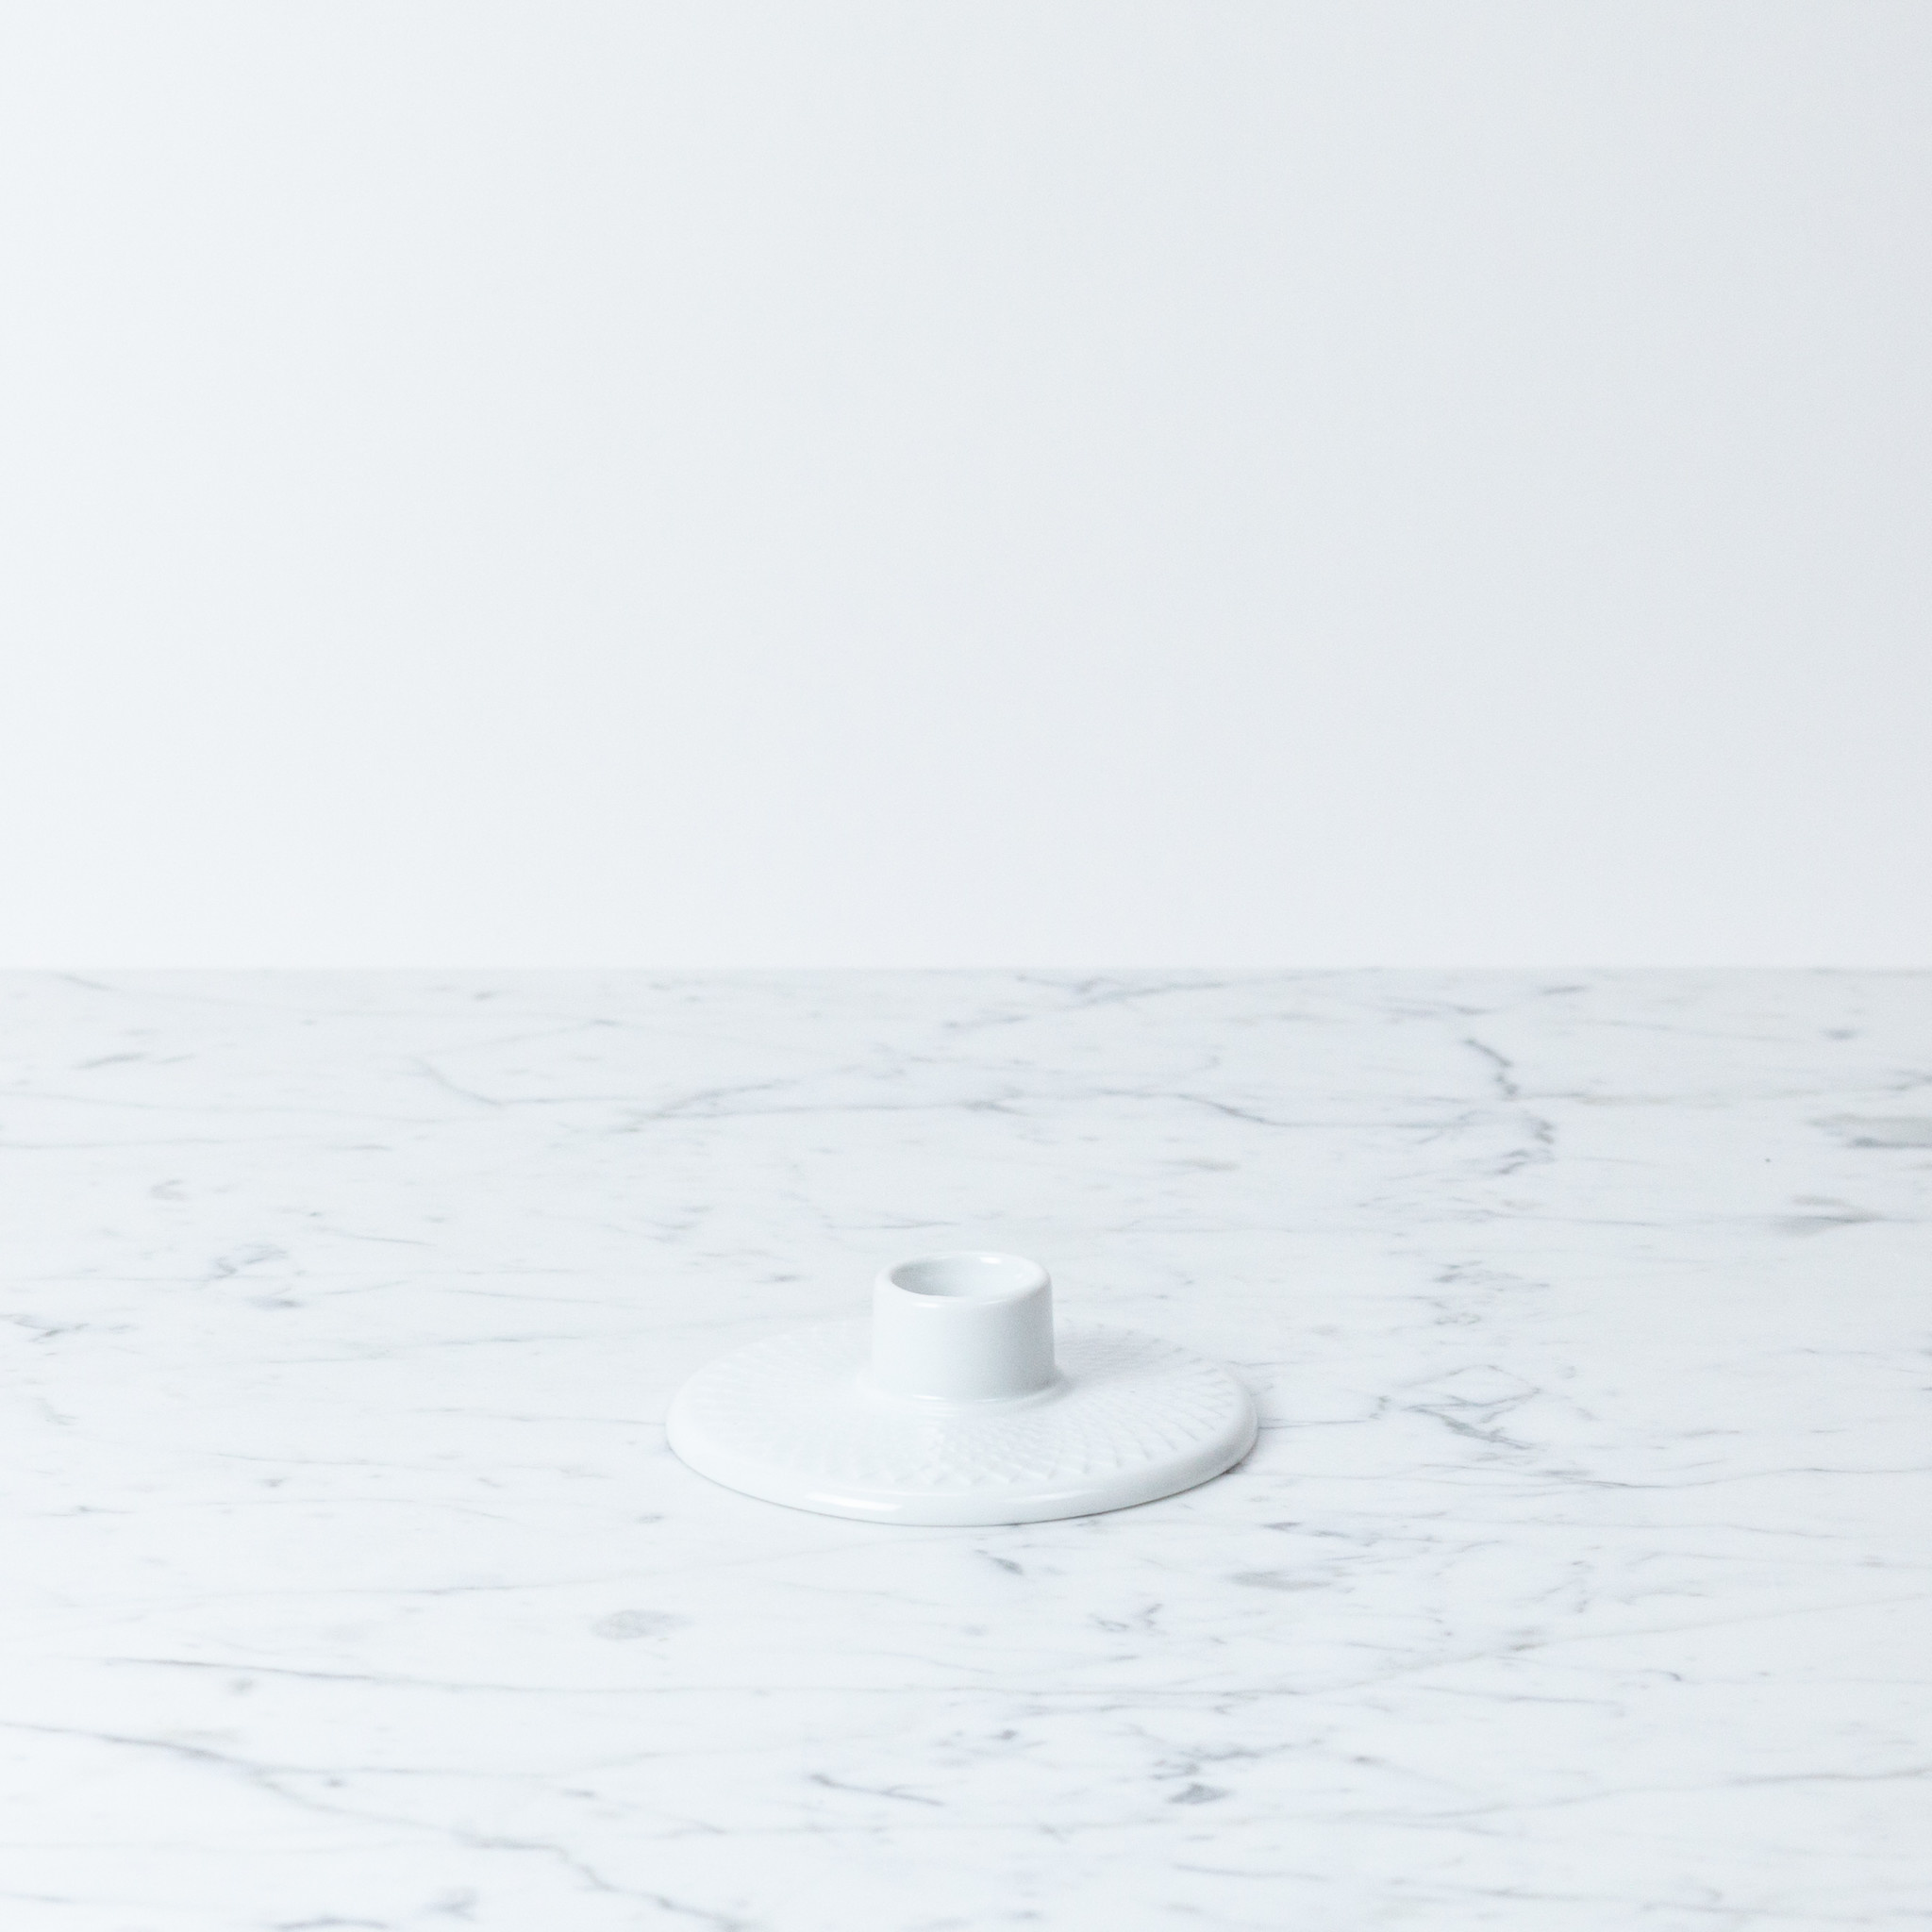 Lyngby Porcelain Lyngby Low Candle Holder - White Porcelain